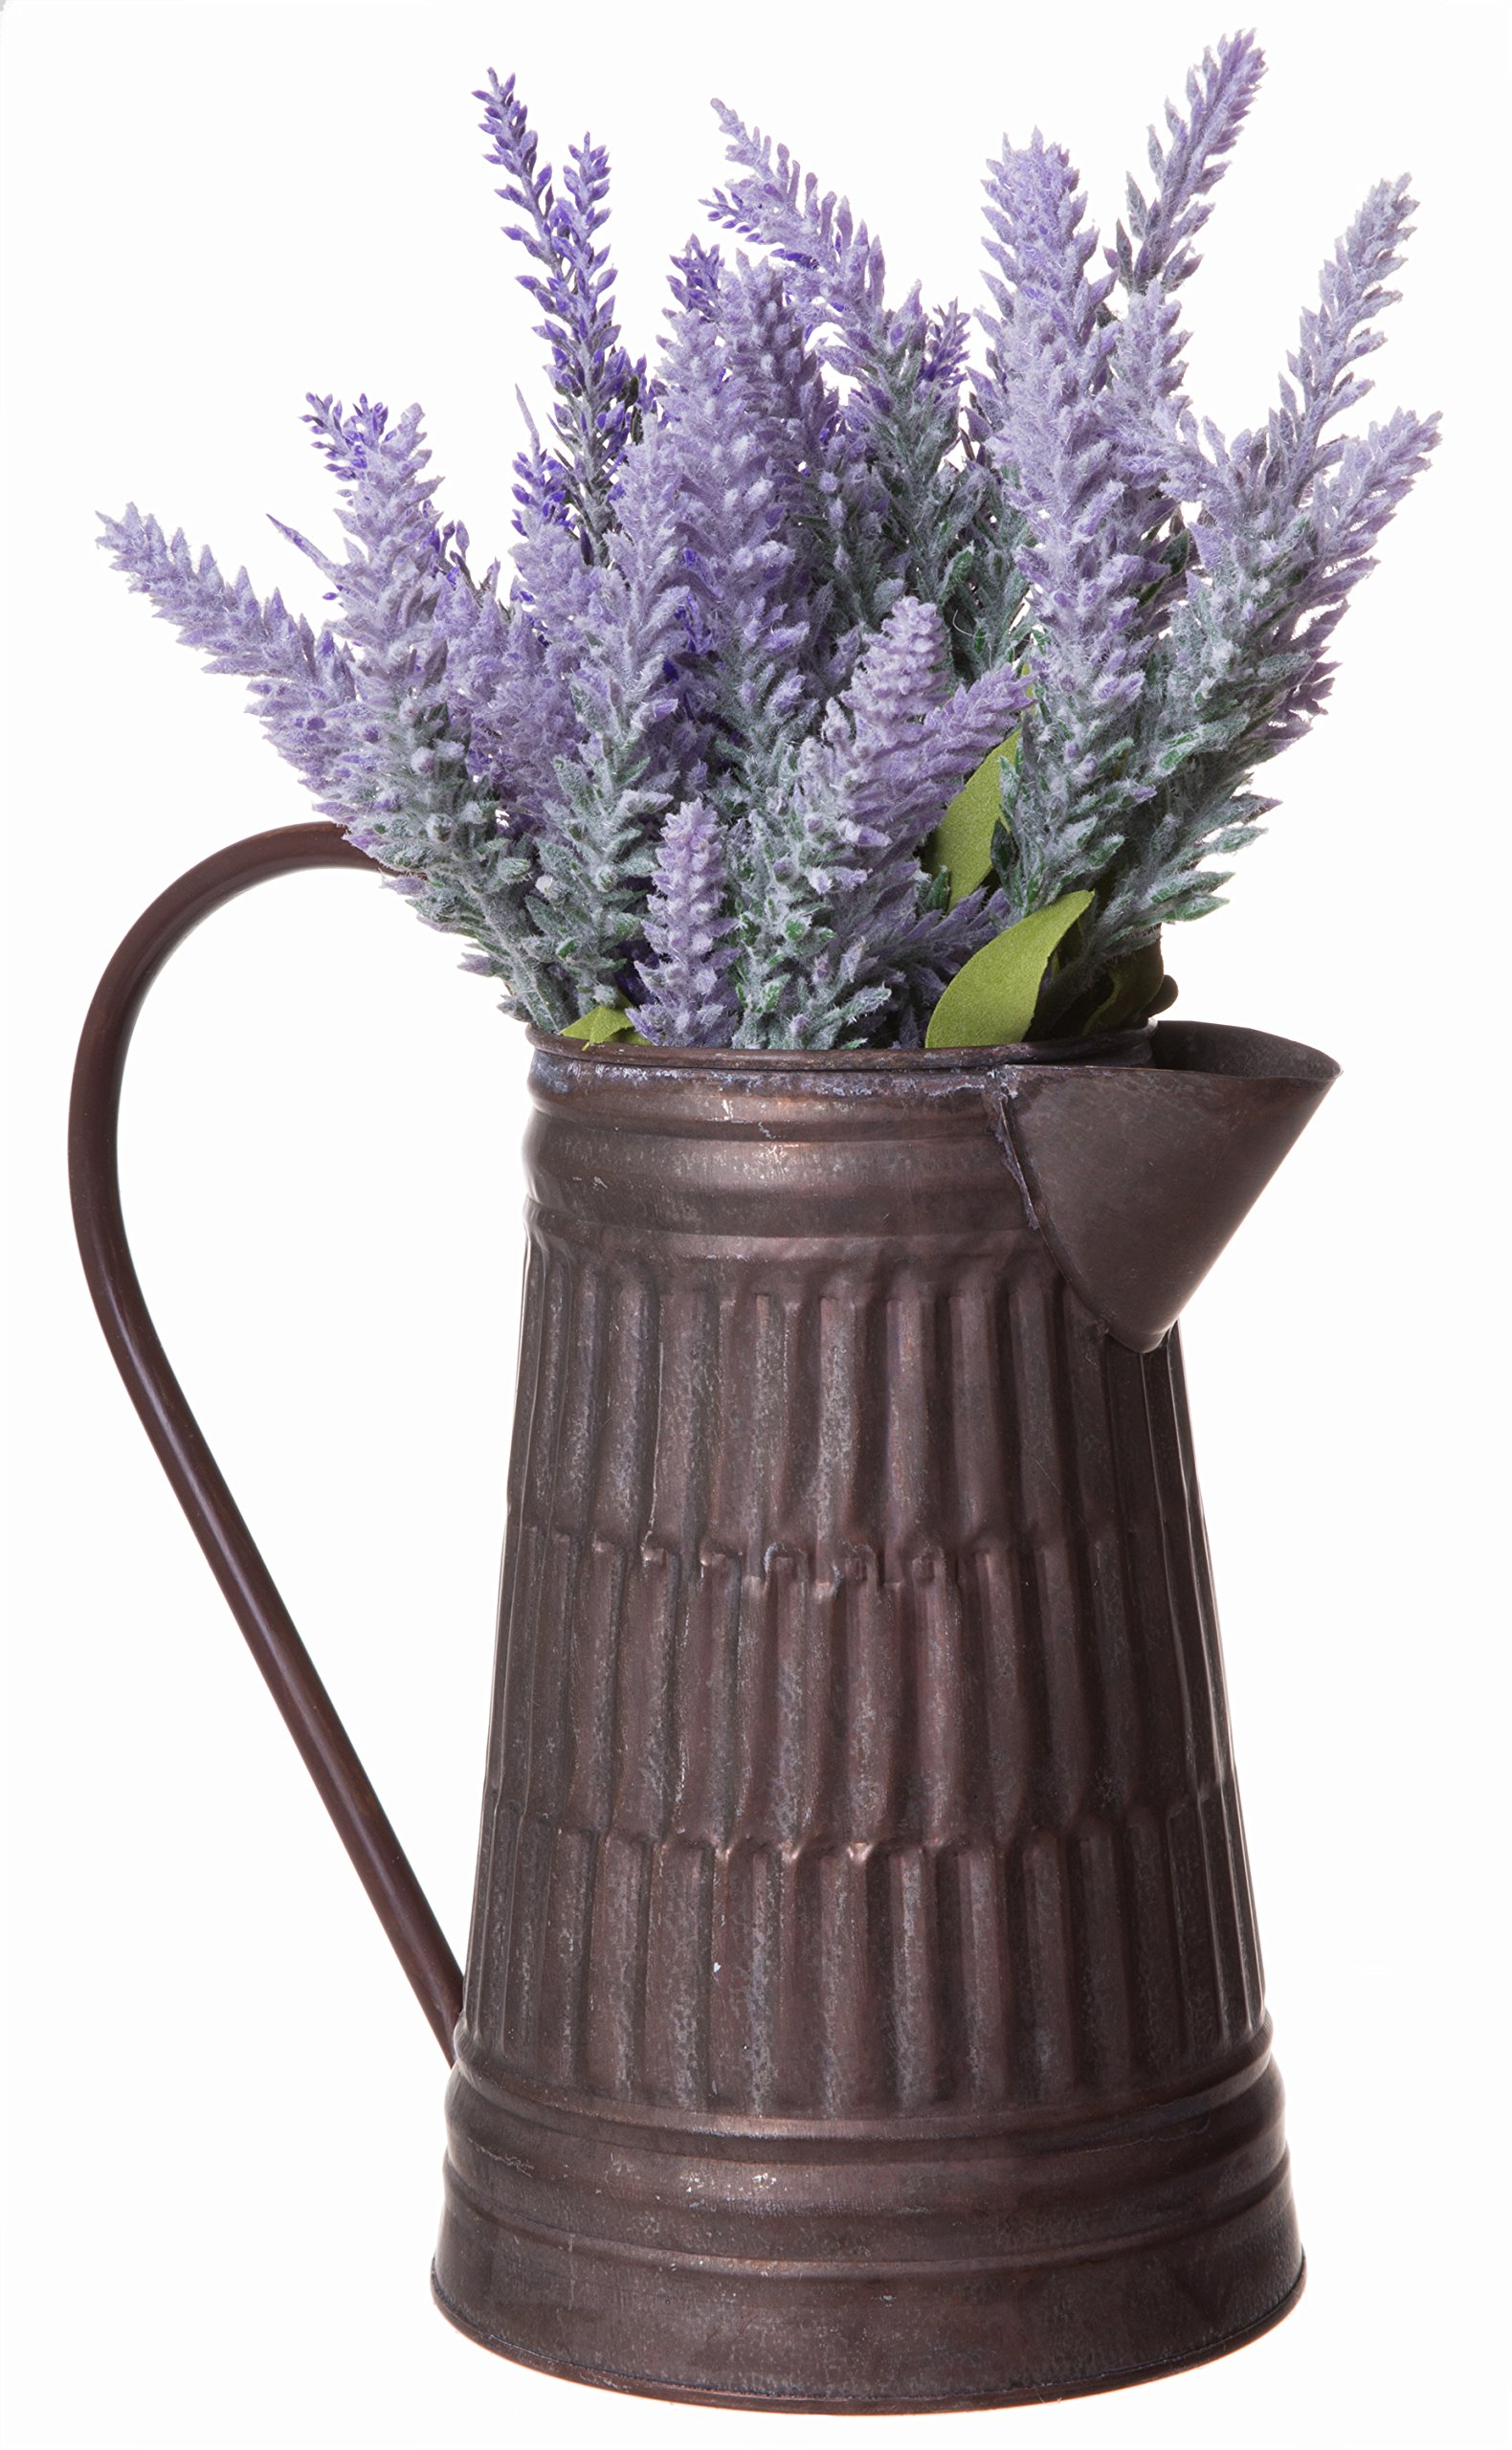 Farmhouse Brown Rustic Style Galvanized Milk Can Pitcher Vase with Handle - 7.5 Inch Tall